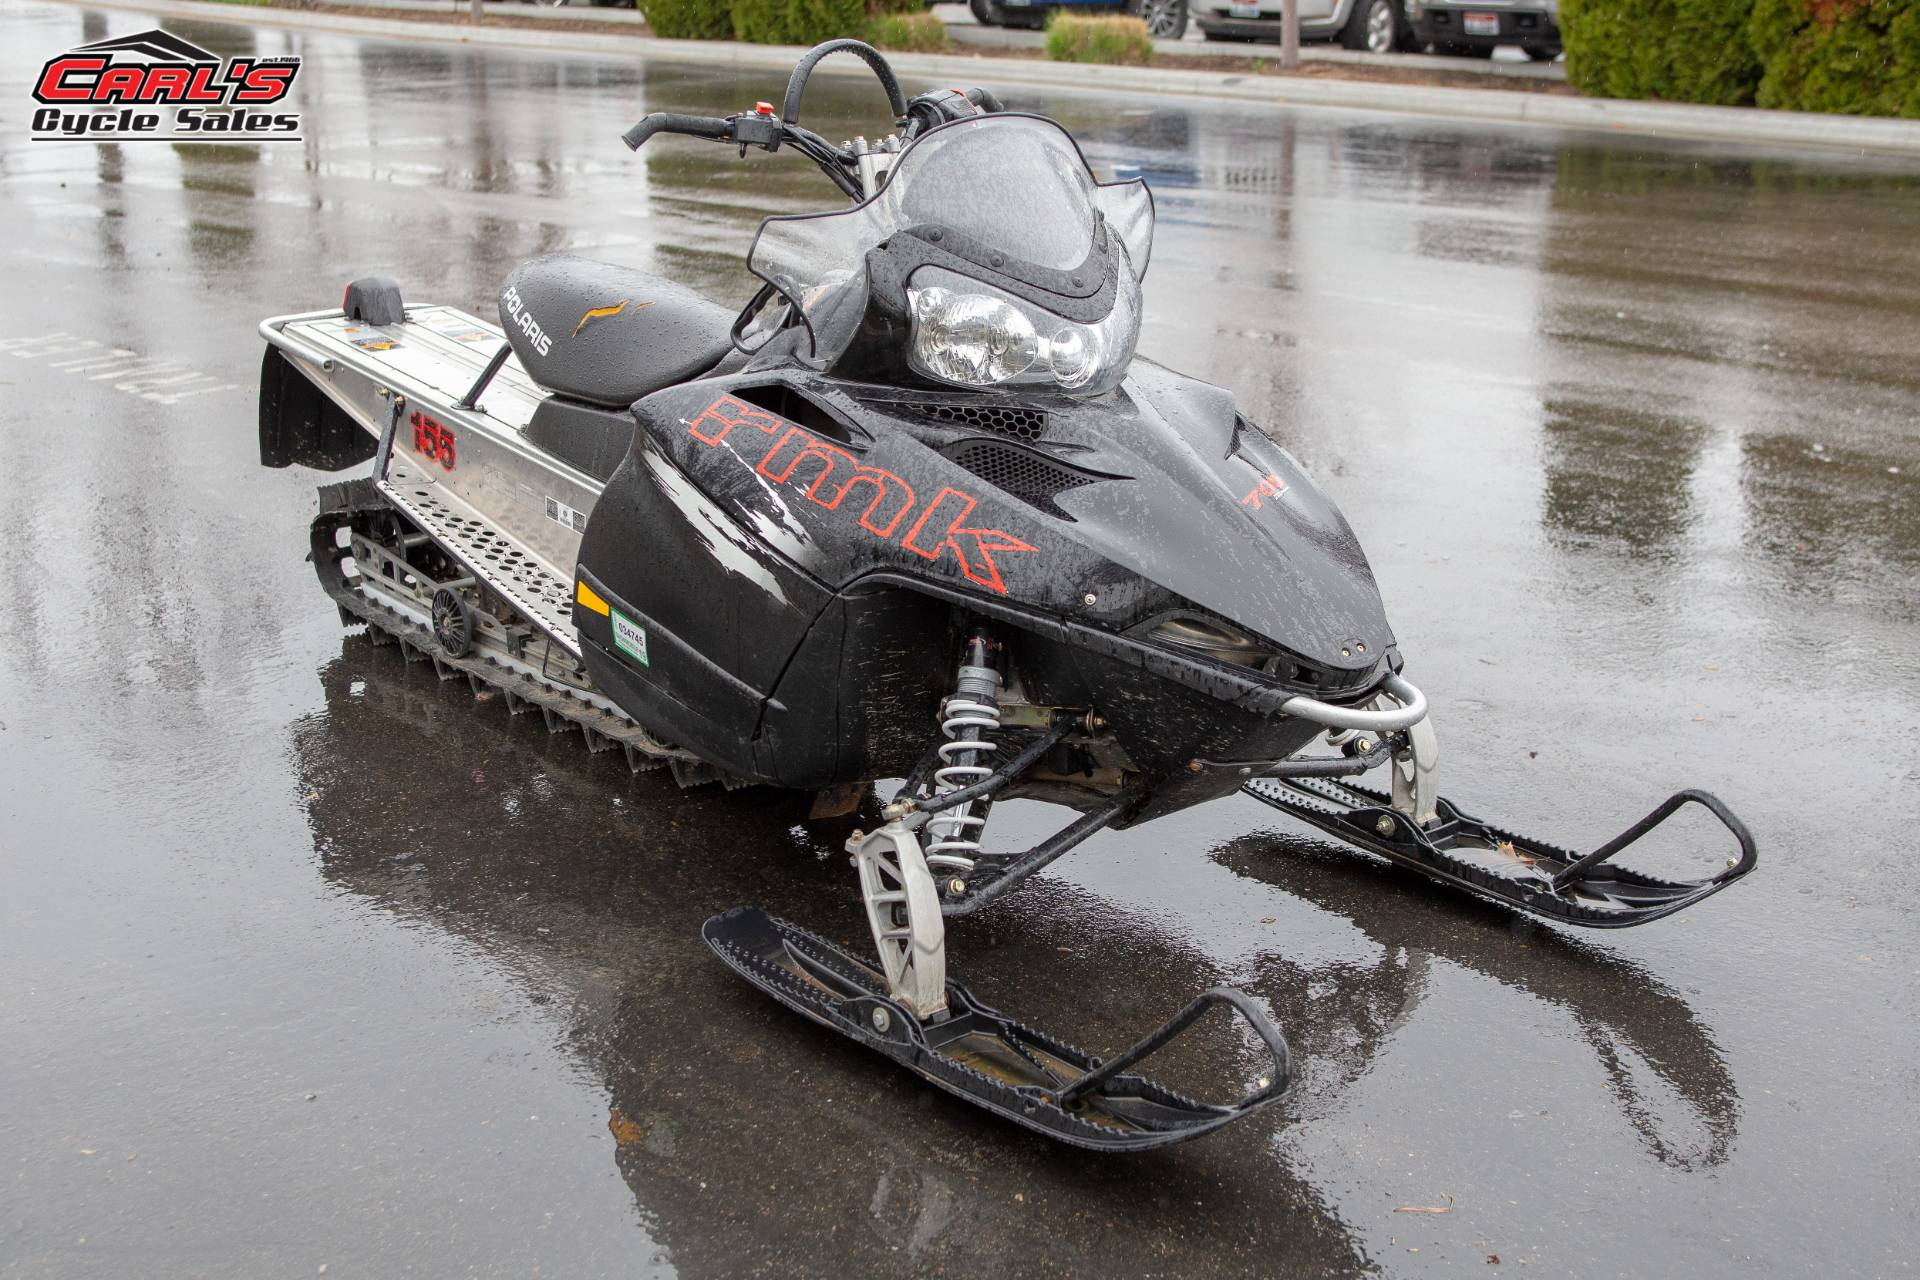 2009 Polaris 700  RMK 155 in Boise, Idaho - Photo 3